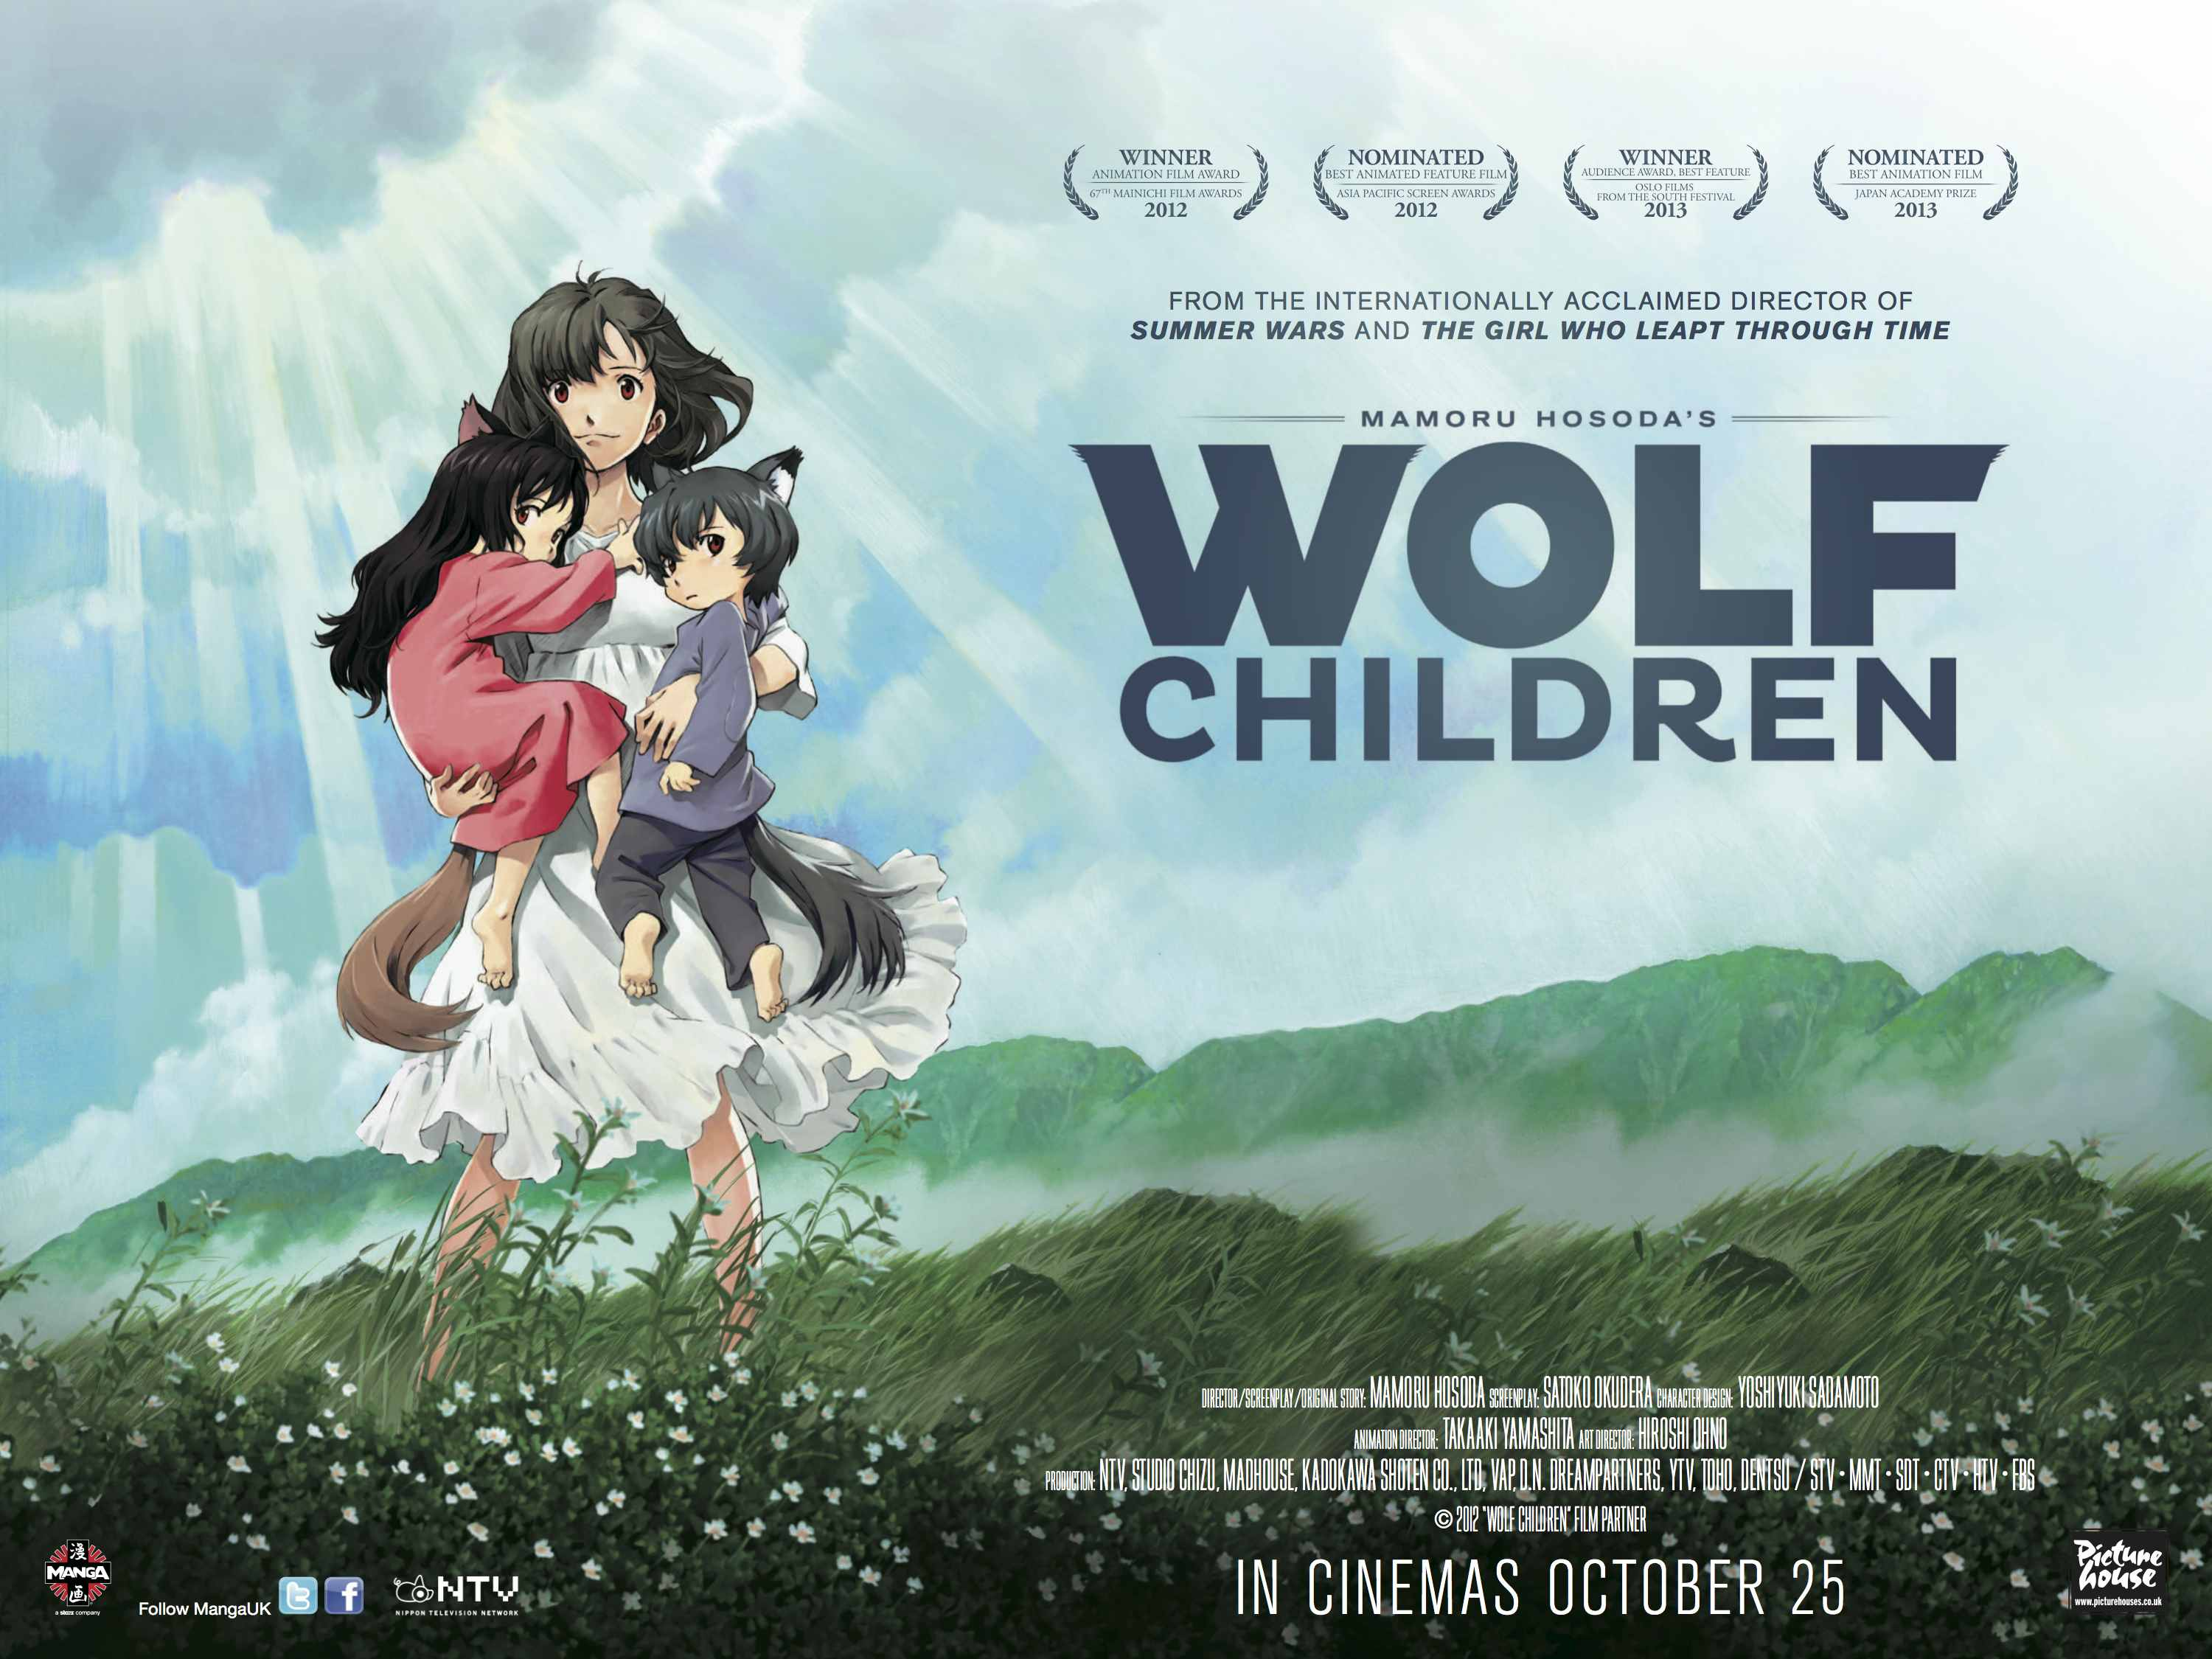 Saddest anime movie you watched? - Dollars BBS   Films